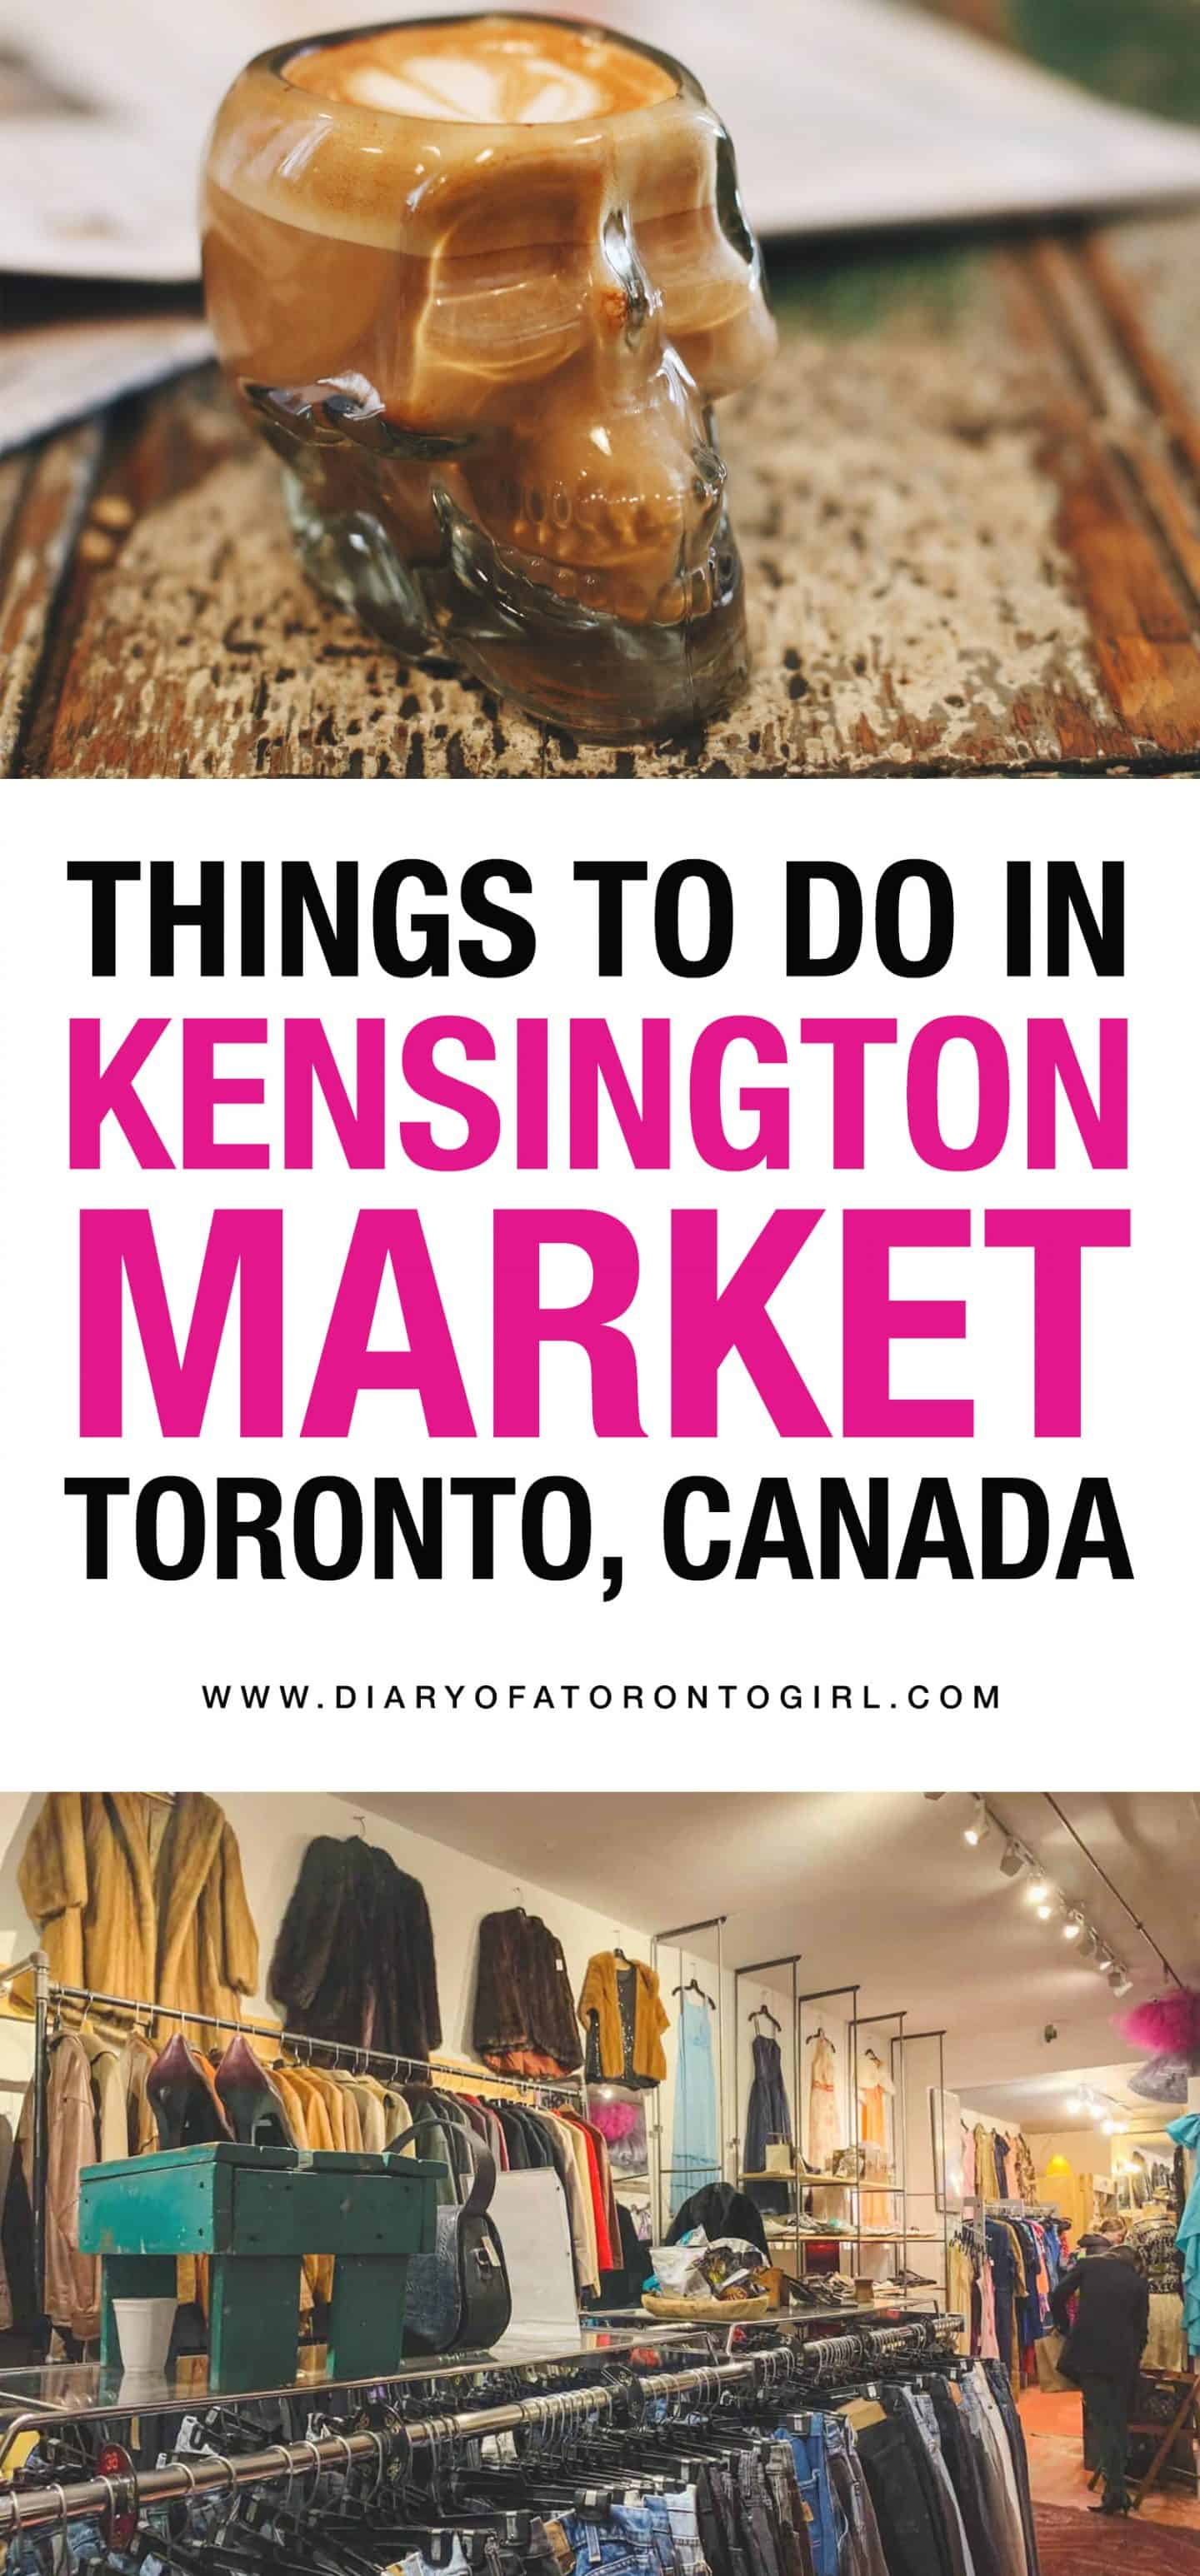 Looking for fun things to do in Kensington Market in Toronto? Here's how to spend the perfect day exploring this quirky Toronto neighbourhood!